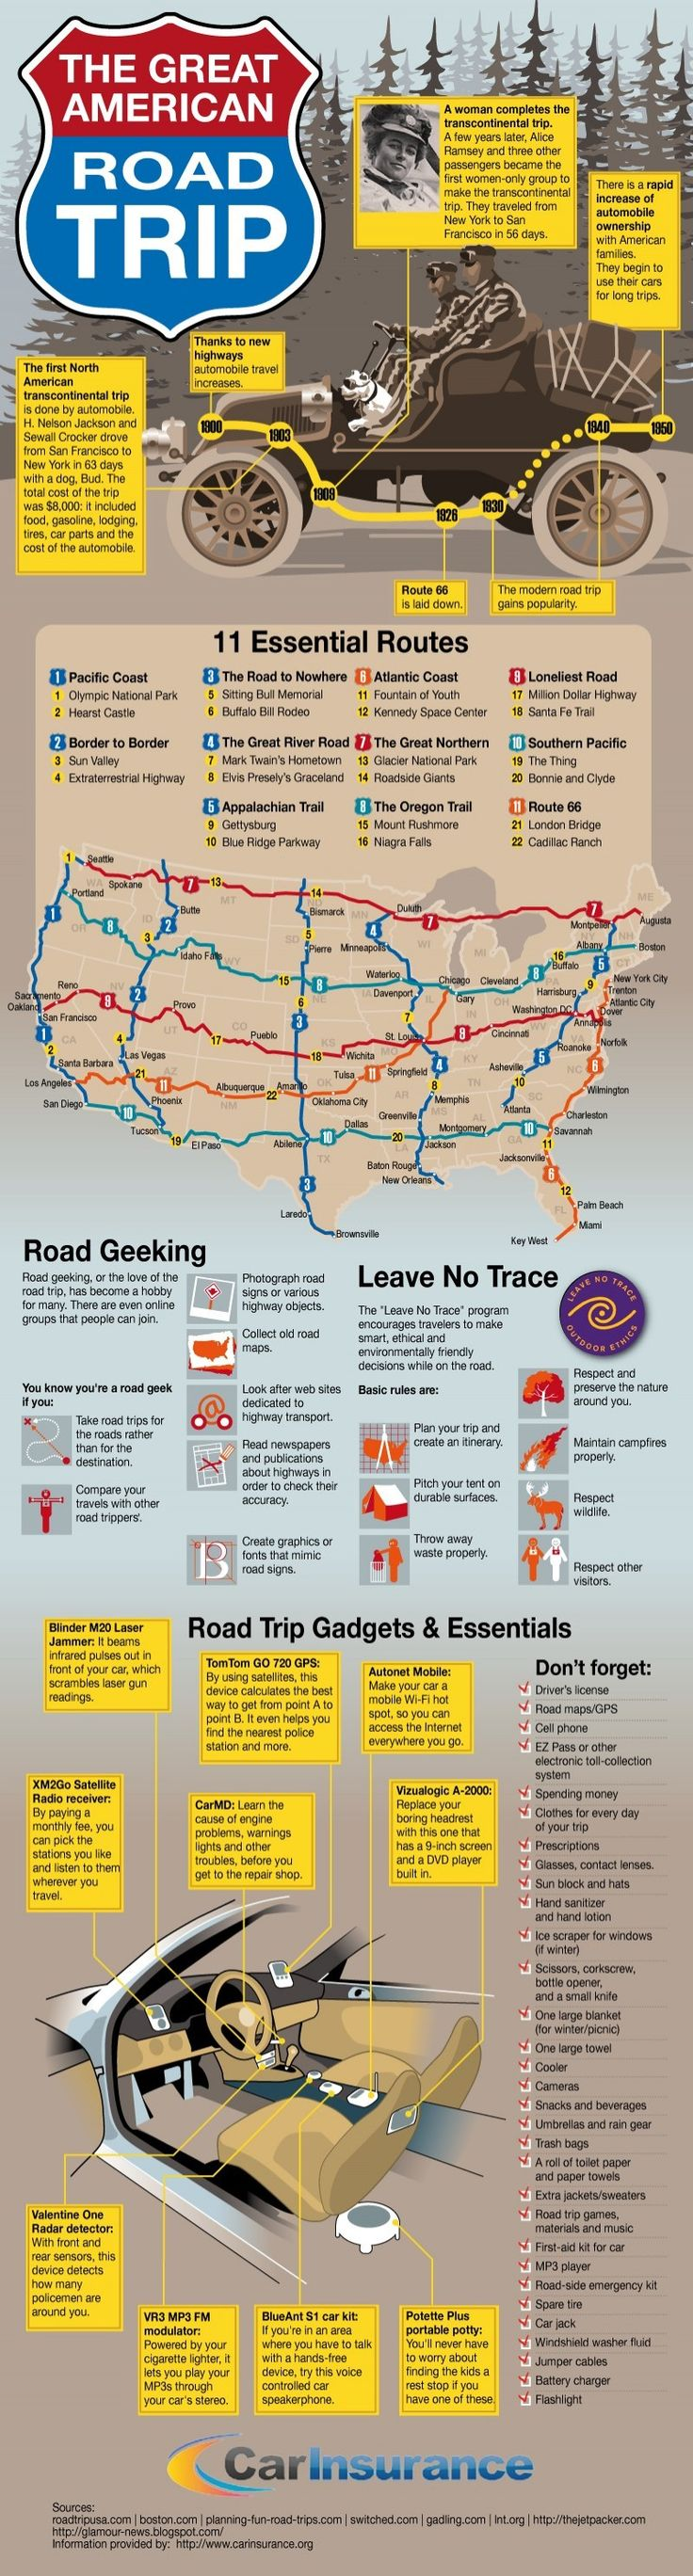 Best Ideas About Cross Country Trip On Pinterest Countries - Usa maps route planner